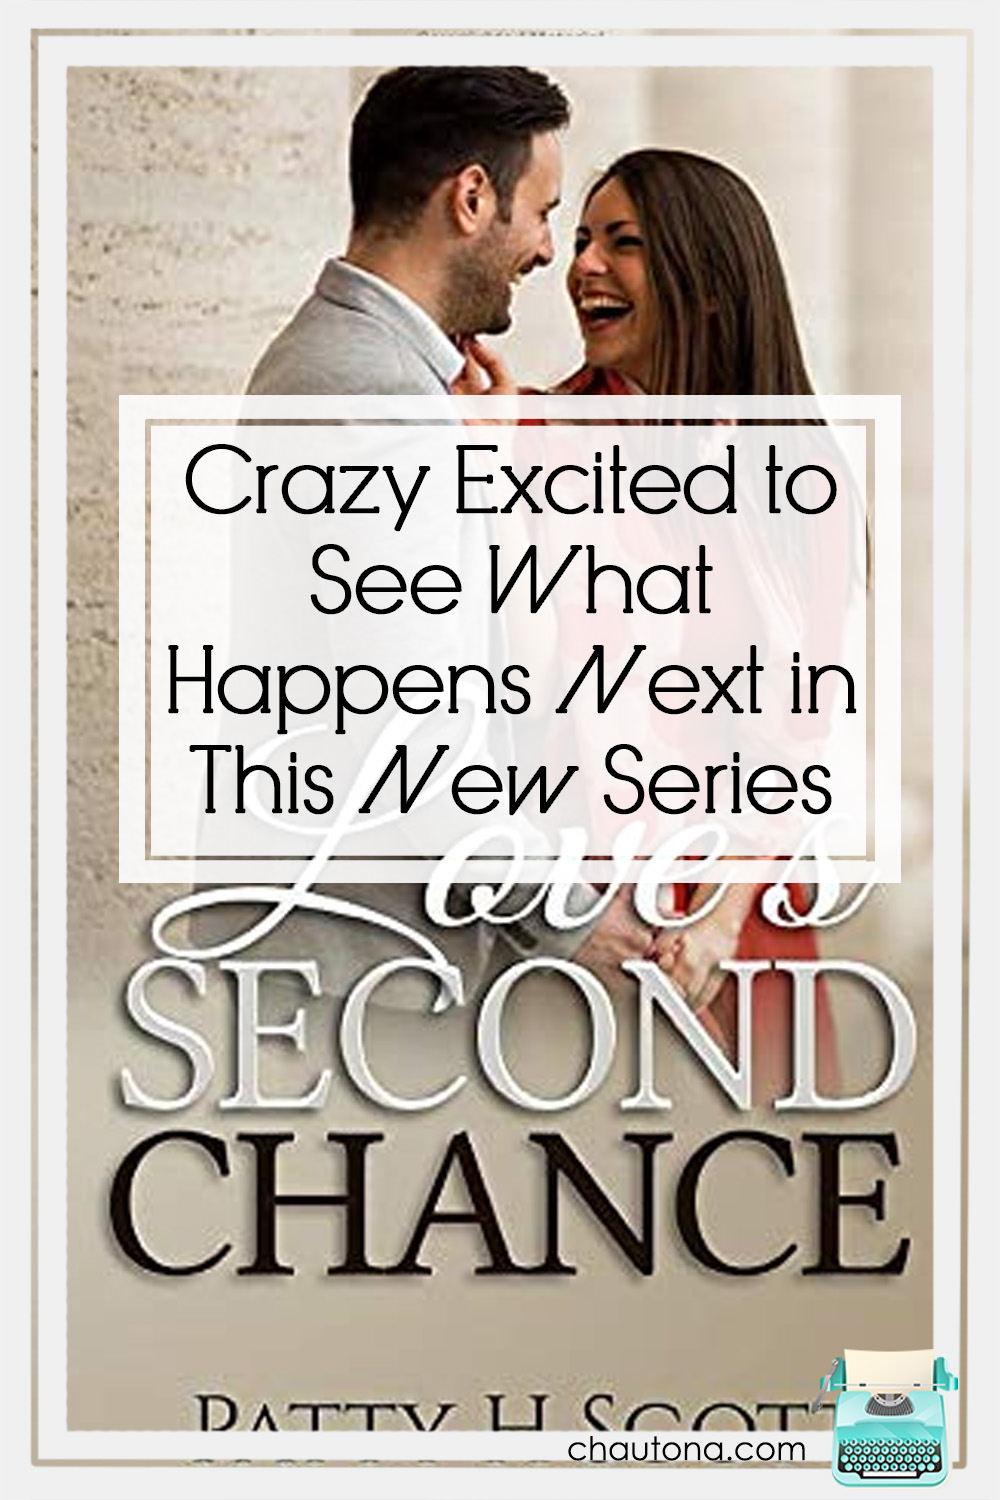 Love's Second Chance kicks off a series by Patty H. Scott with fun, quirky characters, fabulous settings, and a story that'll make you anxious for the next. via @chautonahavig